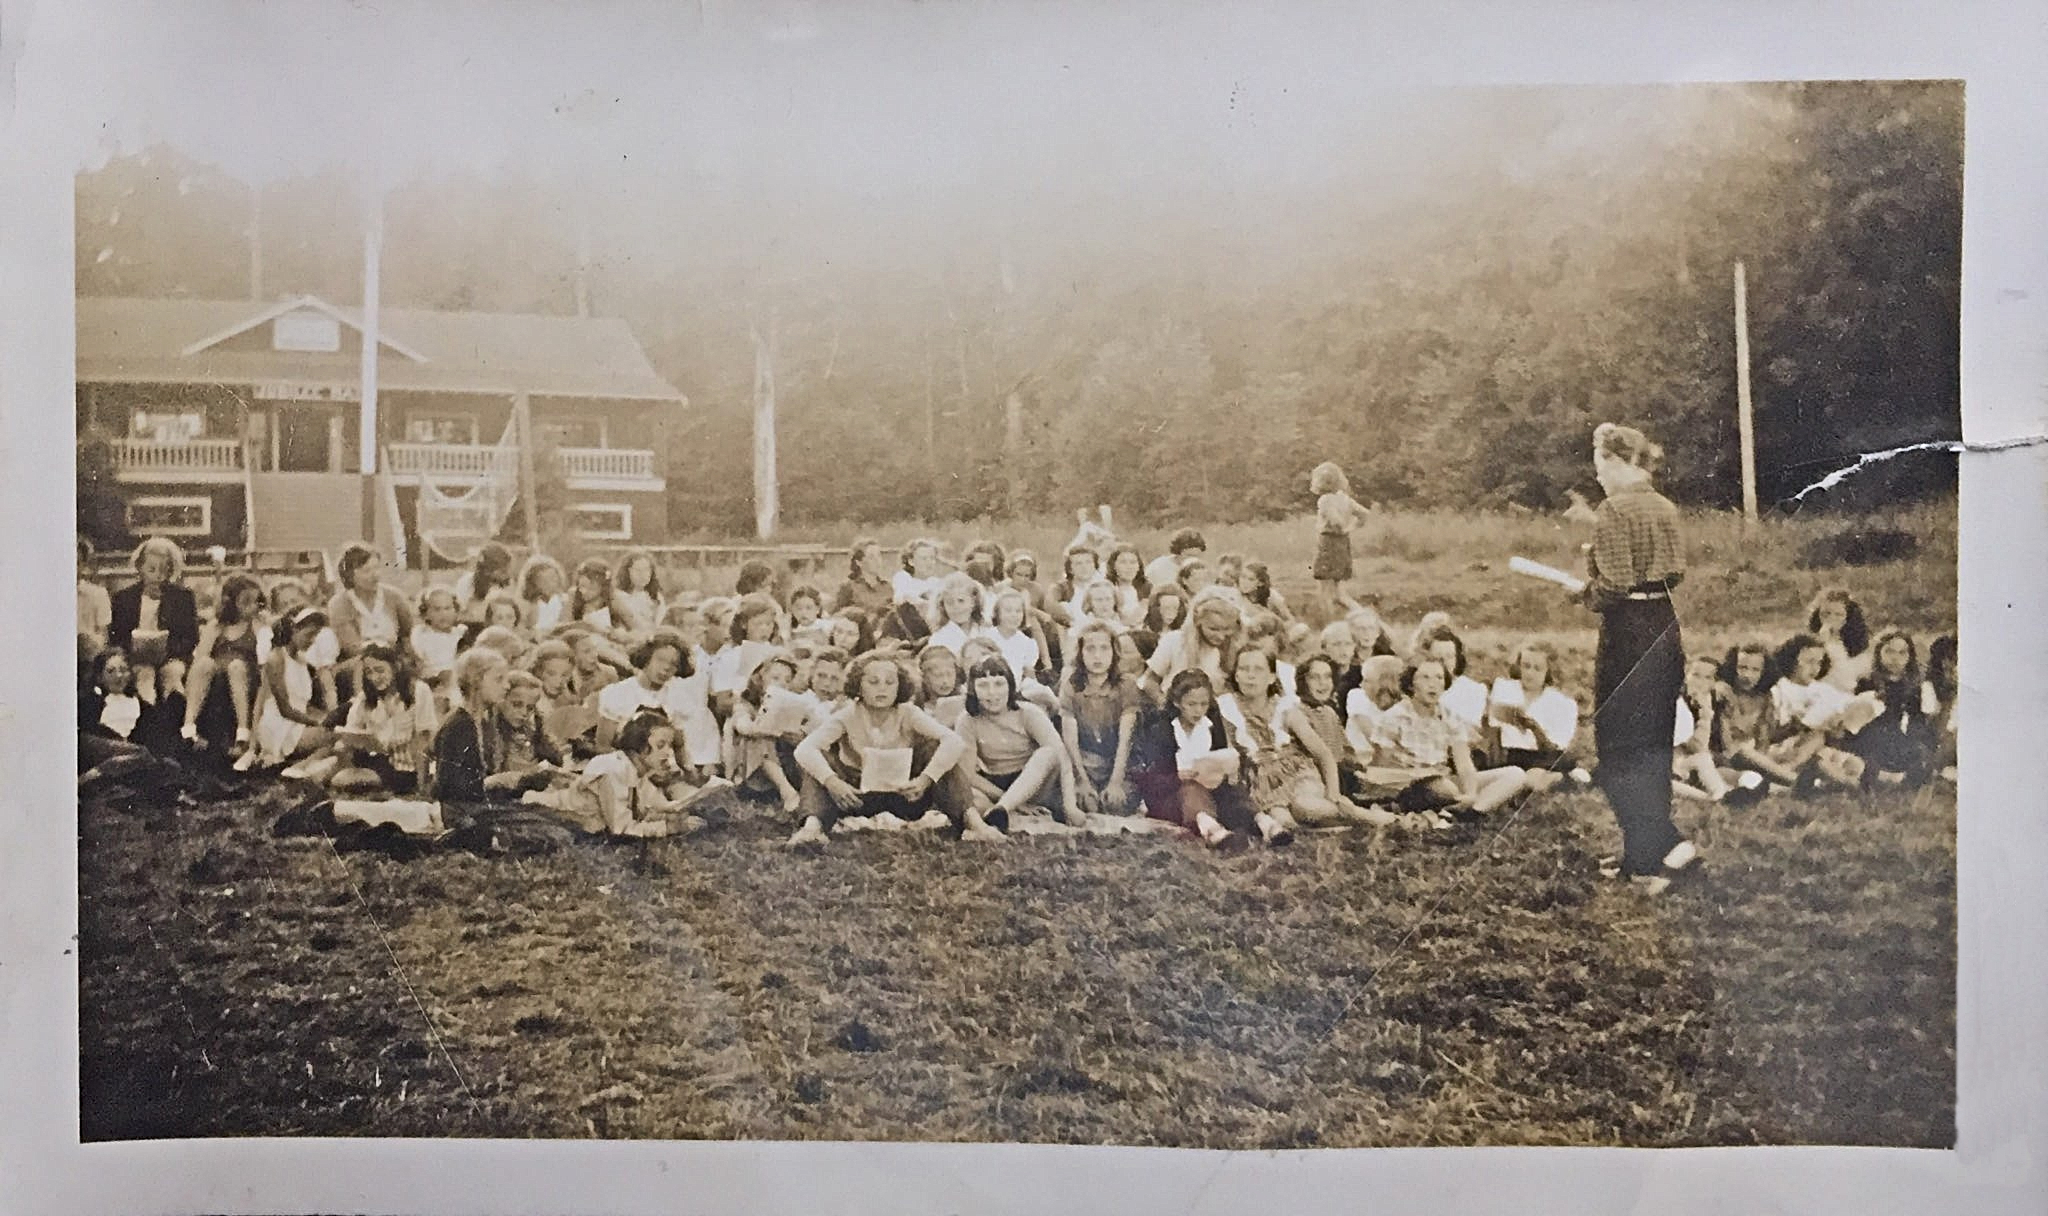 Pictured: Girls assembled on the main field at Camp Fircom in the late 1940s. Courtesy of Lorraine Elliott.